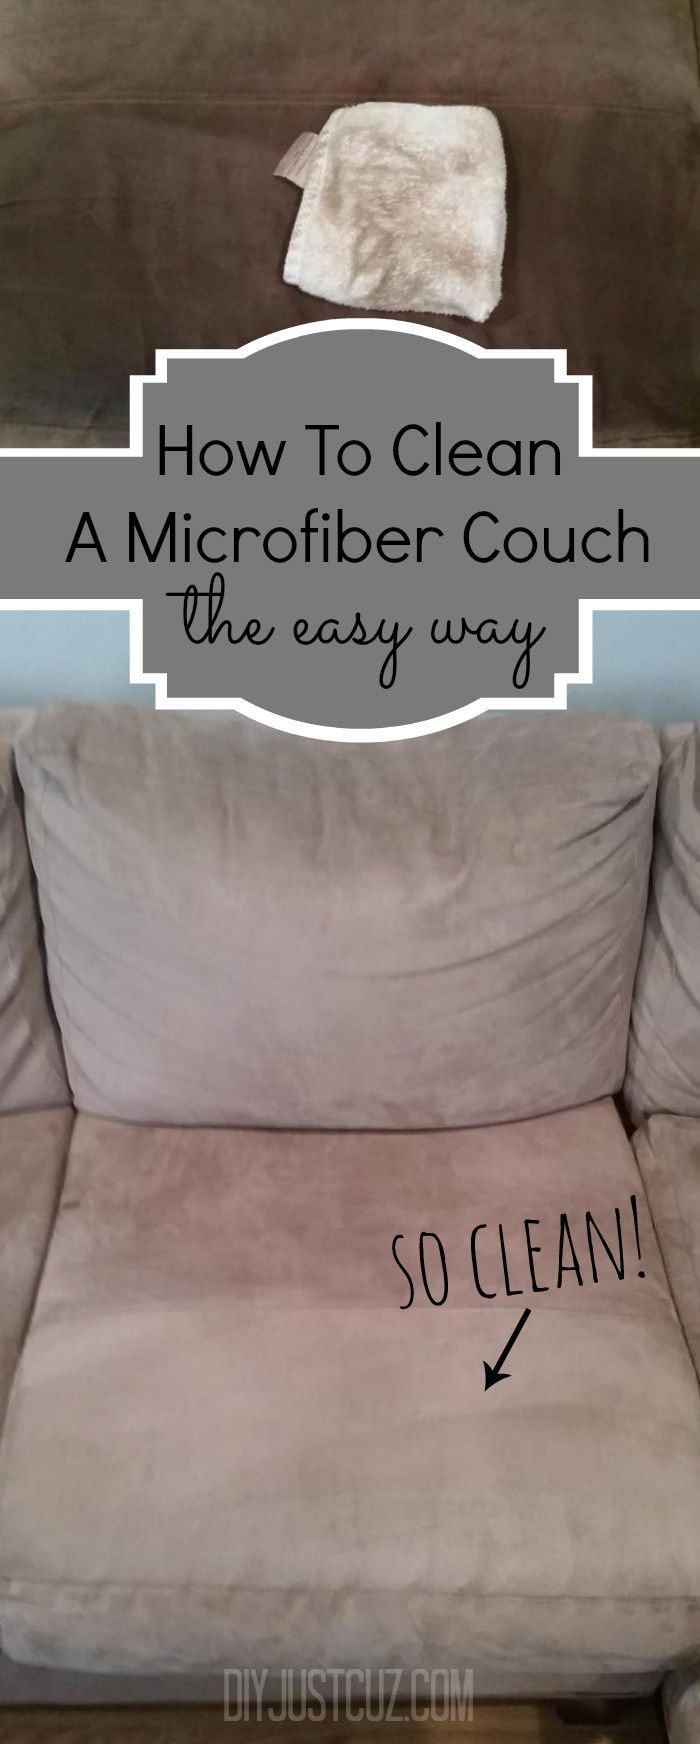 The best thing about a microfiber couch is how easily they can be cleaned read tips on easily cleaning water stains on a microfiber couch diyjustcuz